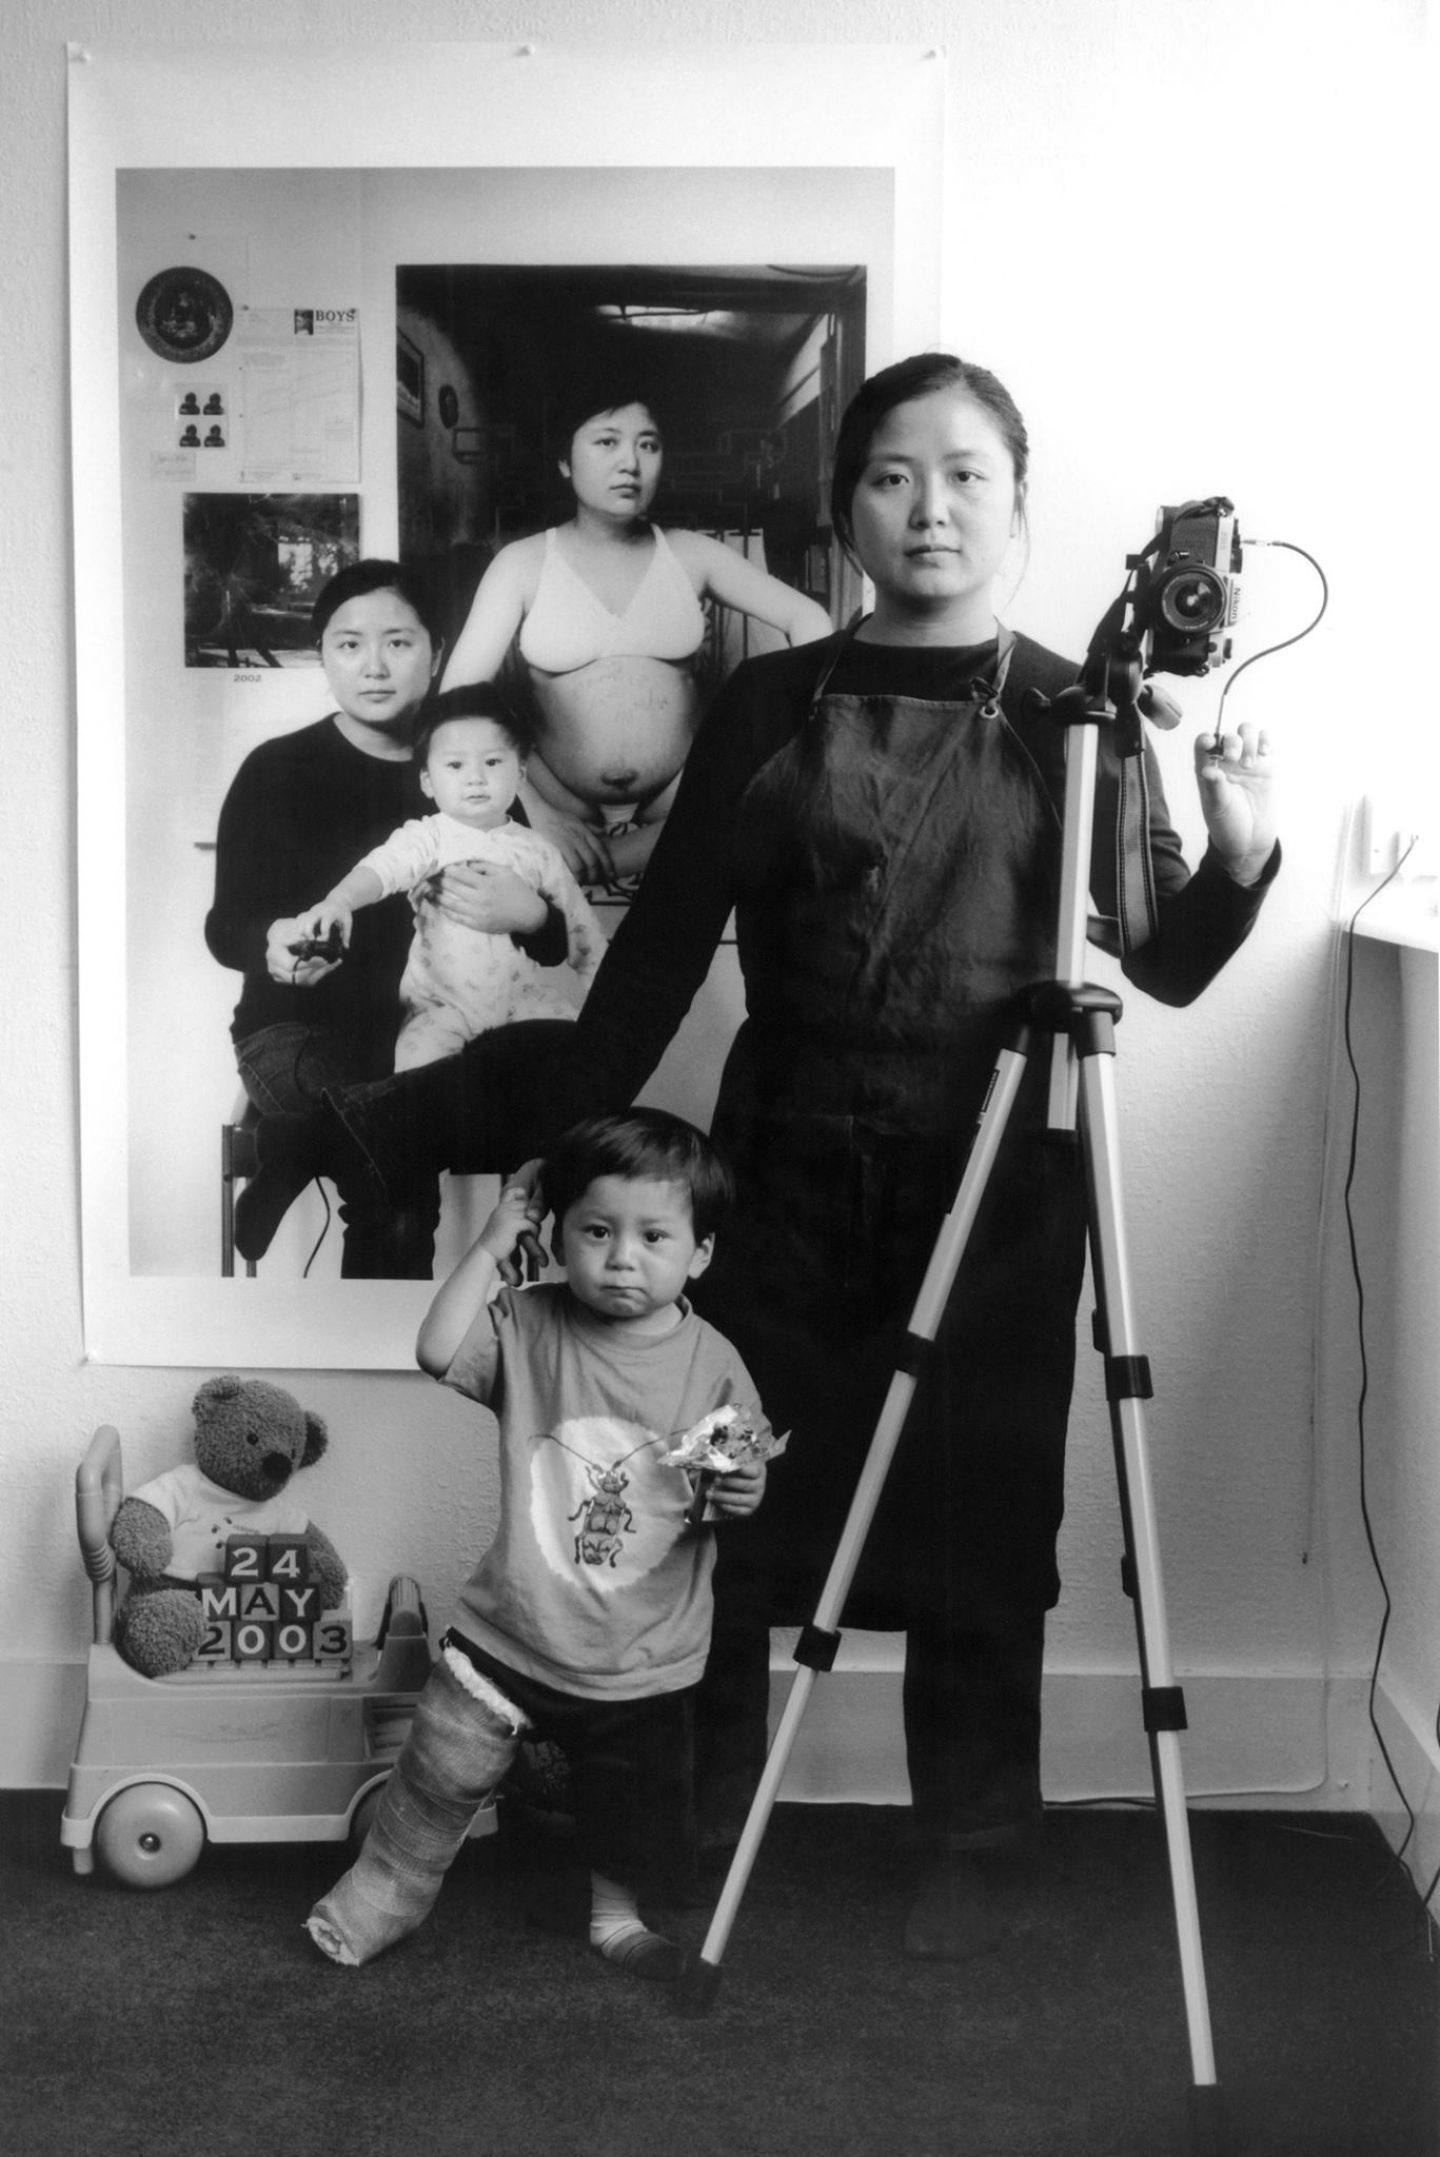 IGNANT-Photography-Annie-Wang-The-Mother-As-Creator-19